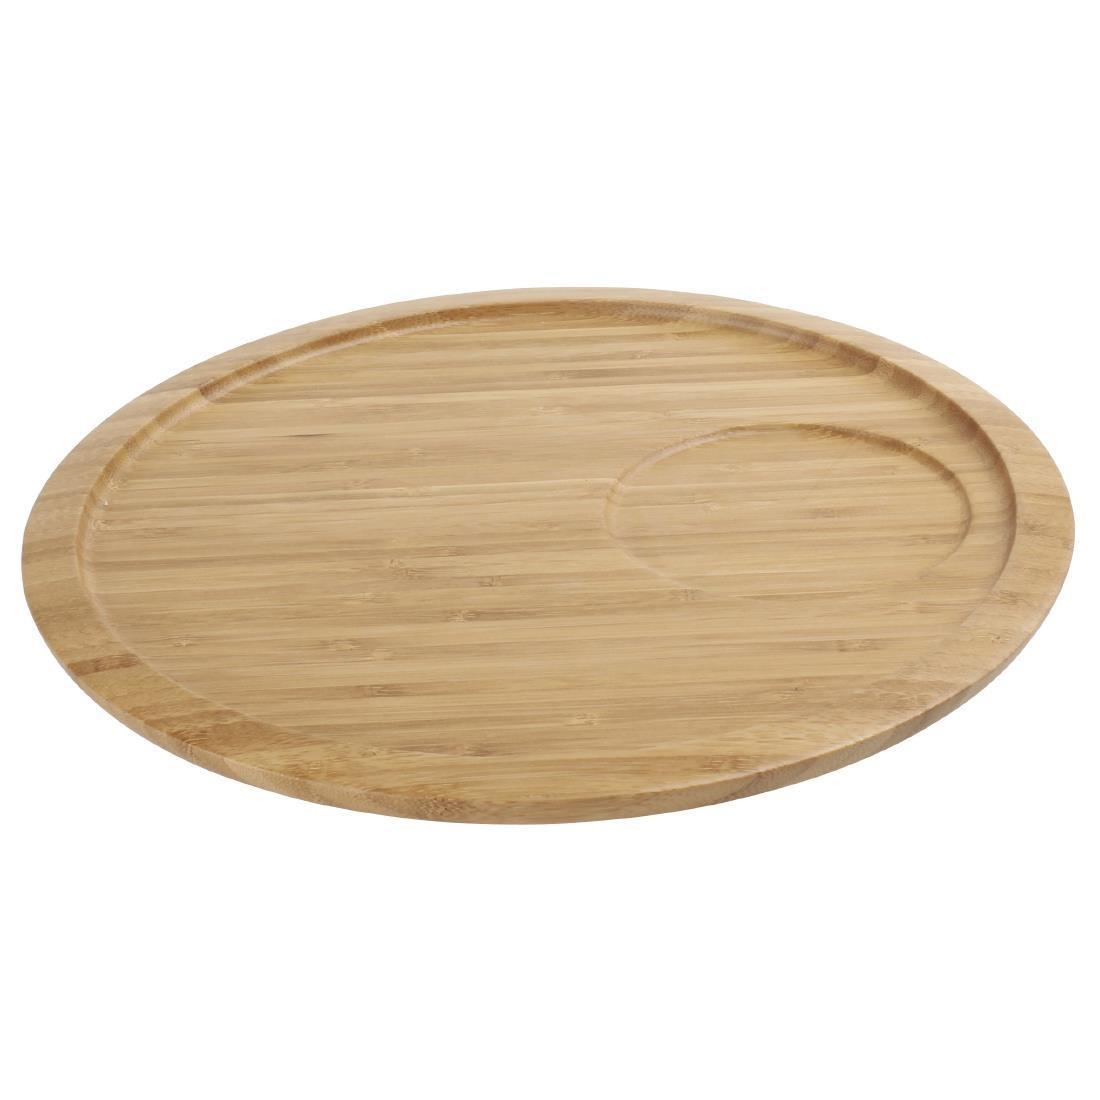 Olympia Bamboo Serving Platter 280mm